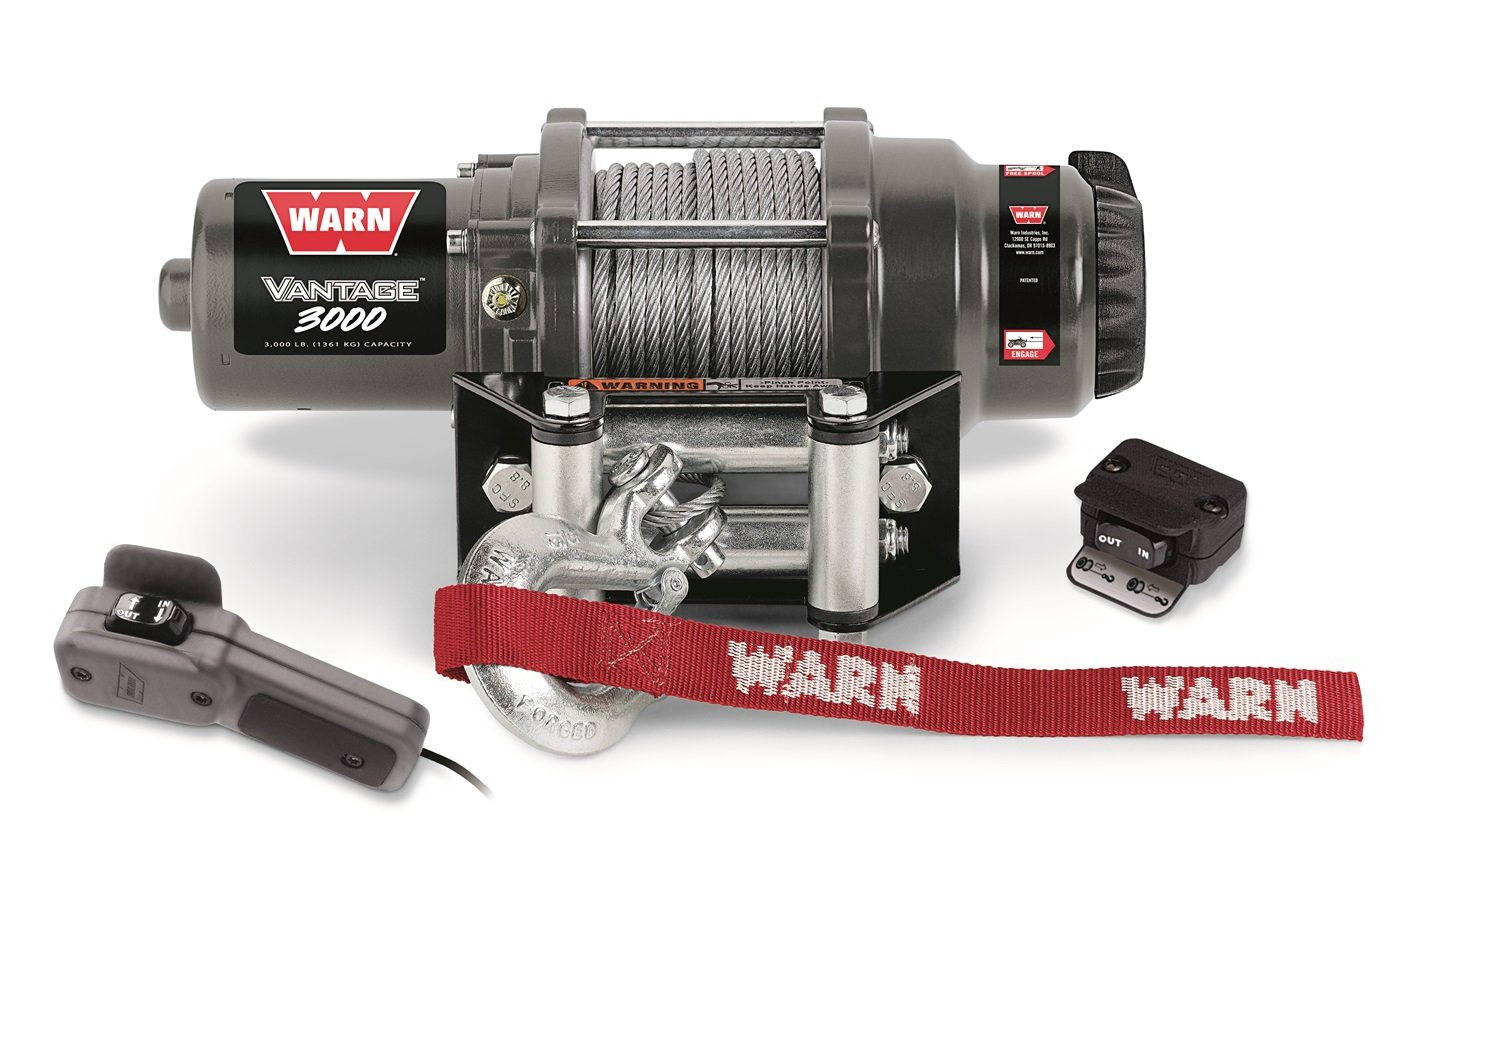 71jbS1GH2gL._SL1500_ amazon com warn 89030 vantage 3000 winch 3000 lb capacity warn vantage 3000 wiring diagram at n-0.co